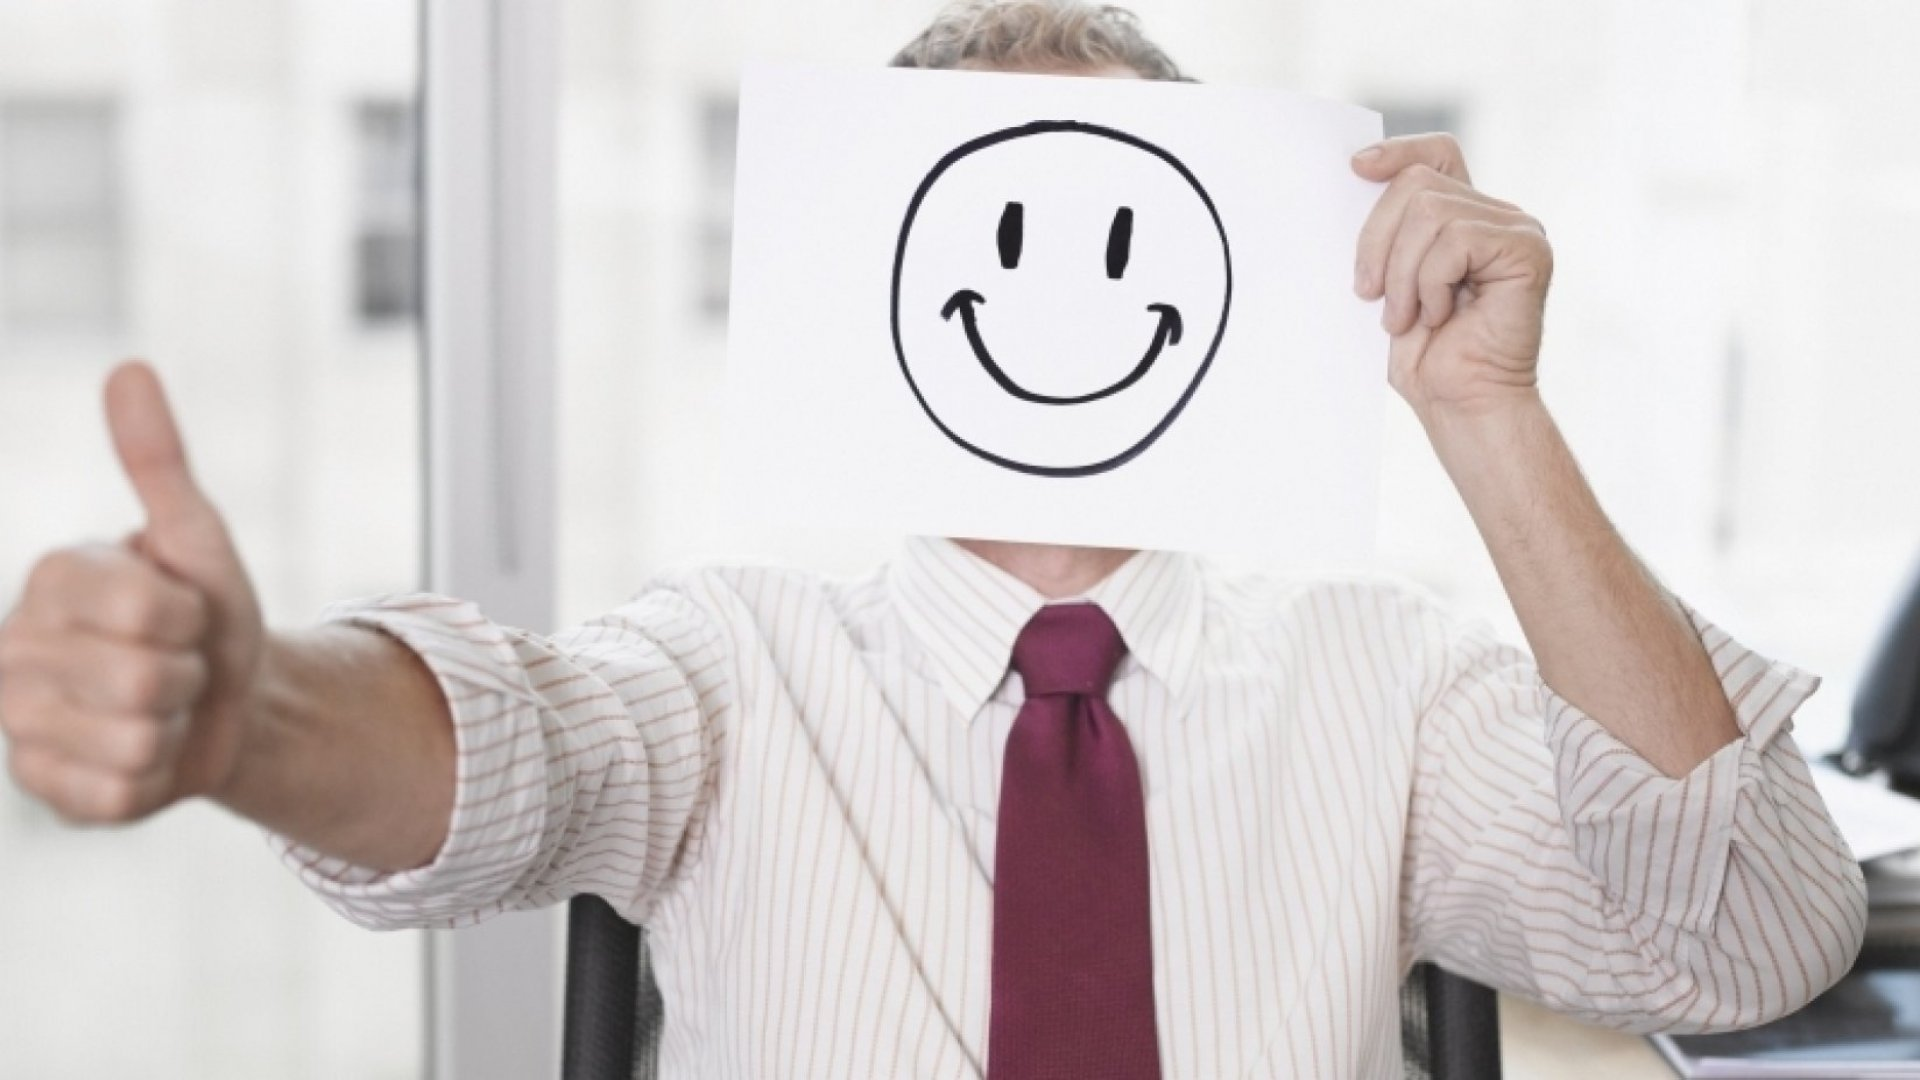 How to Use Humor Effectively as a Boss